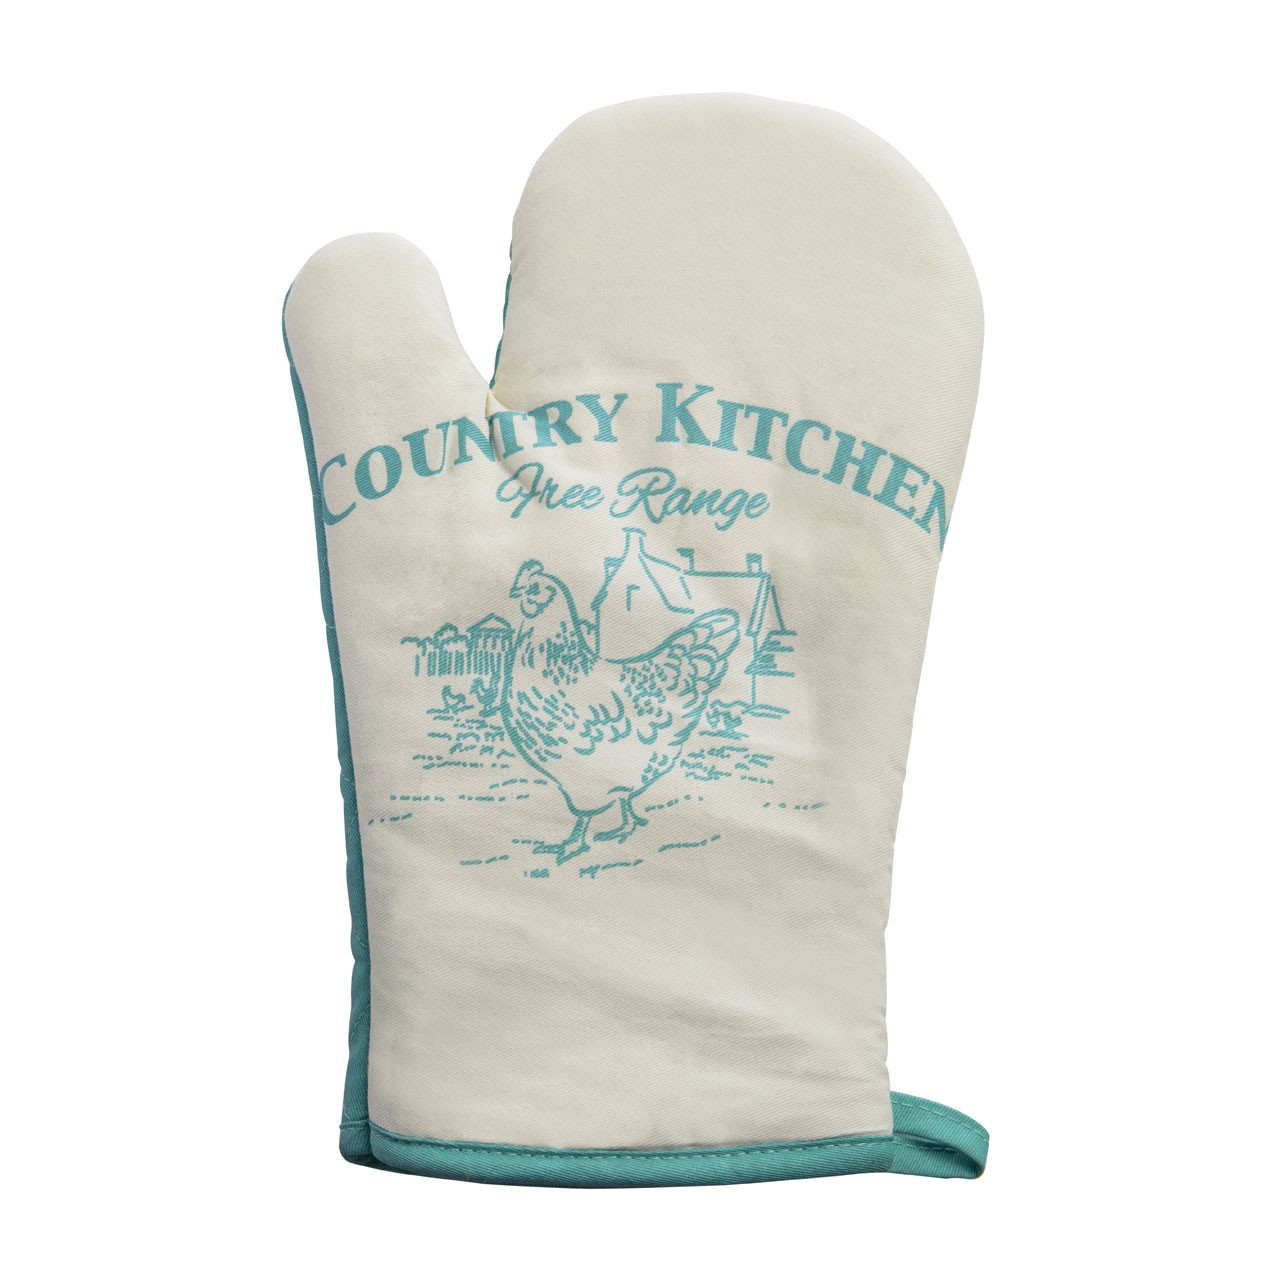 Prime Furnishing Country Kitchen Single Oven Glove - White/Teal